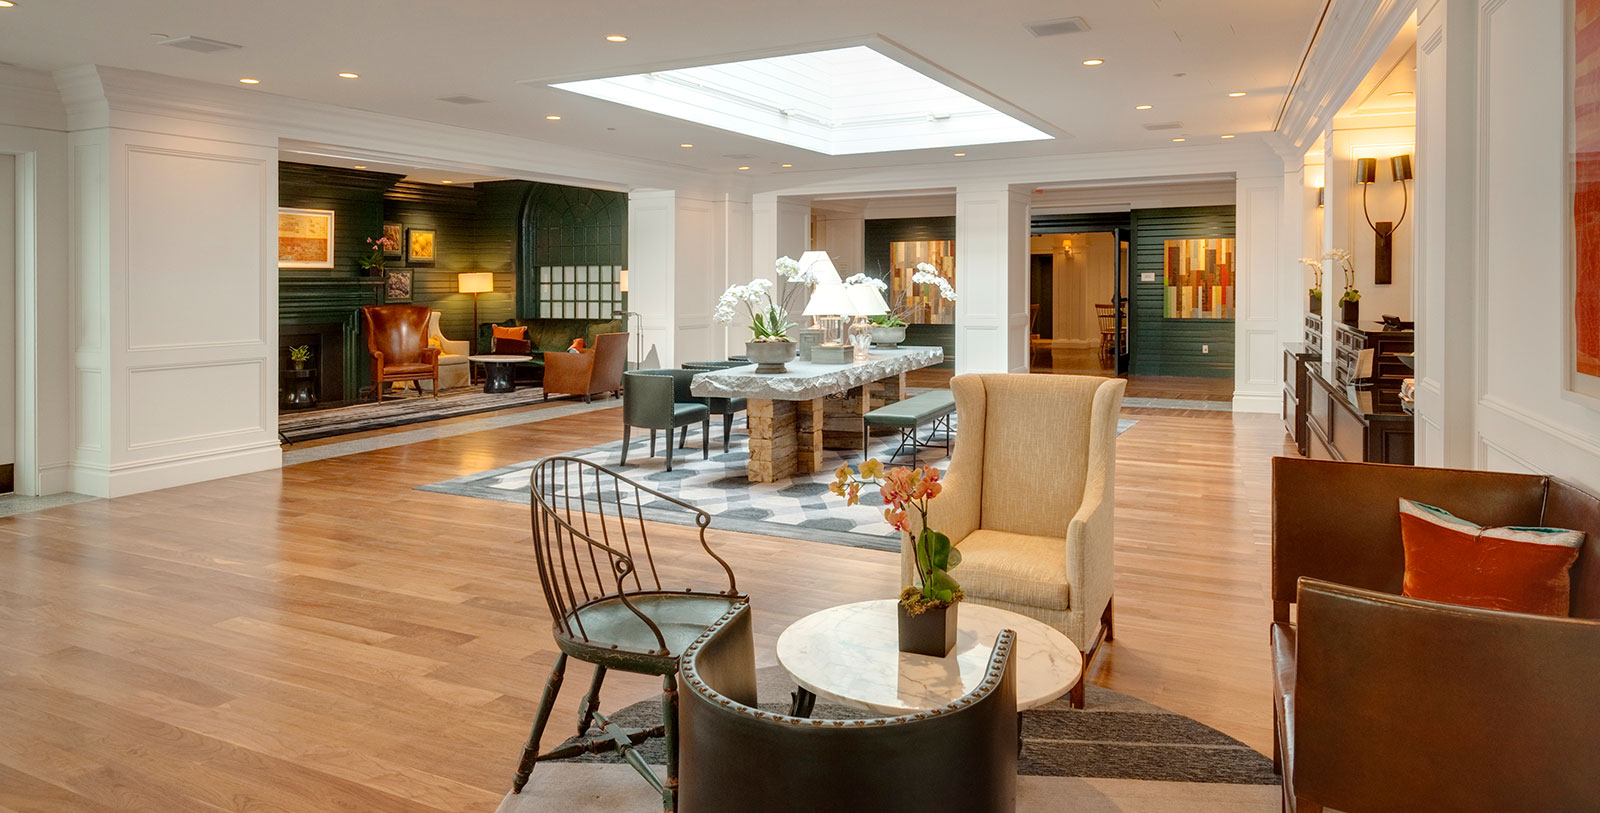 Image of Hotel Lobby Hanover Inn Dartmouth, 1780, Member of Historic Hotels of America, in Hanover, New Hampshire, Hot Deals